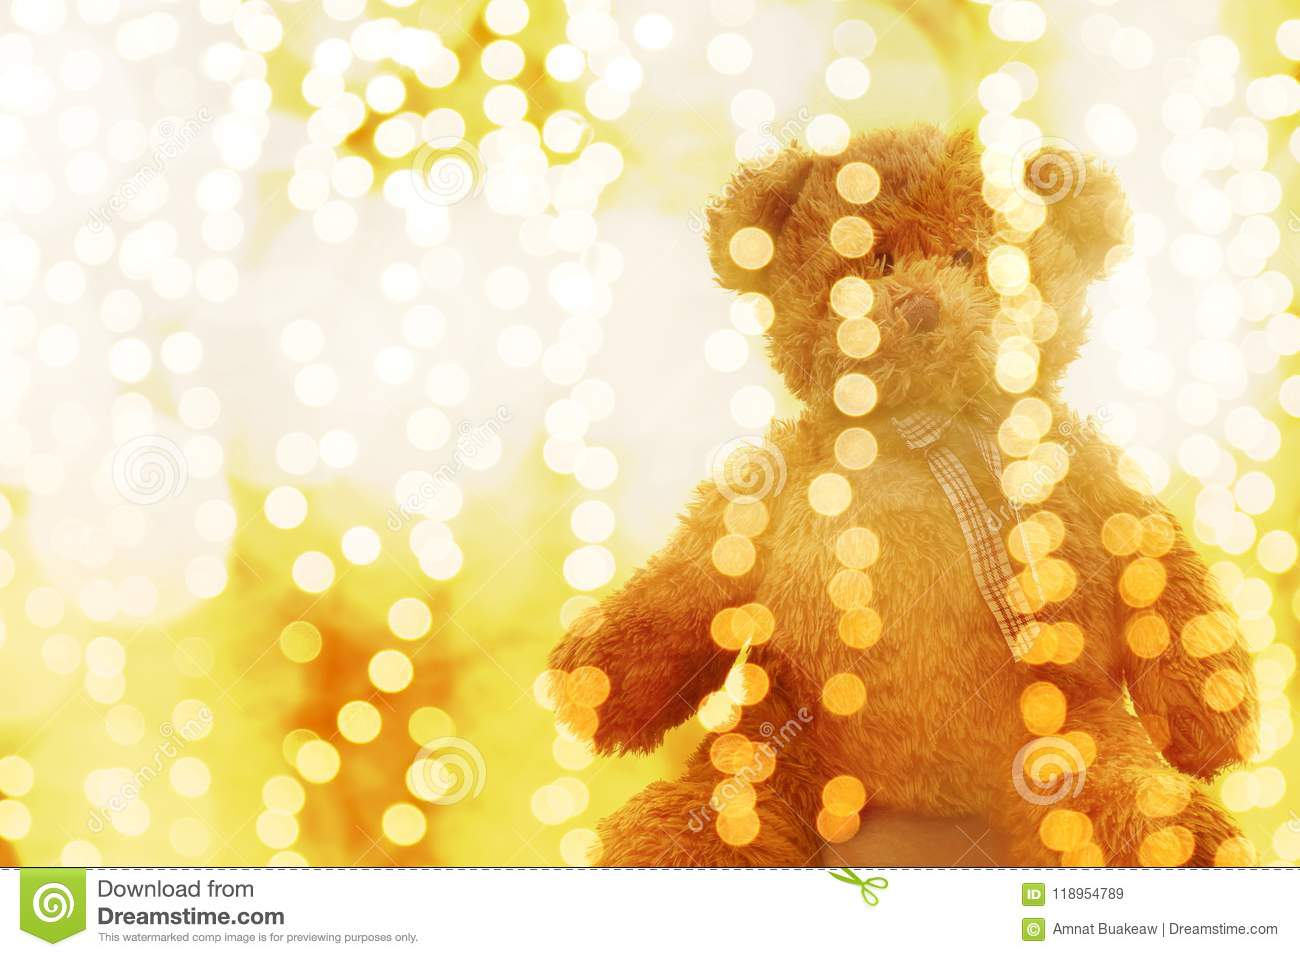 teddy bear doll in lighting line bokeh gold bright for christmas or happy new year background